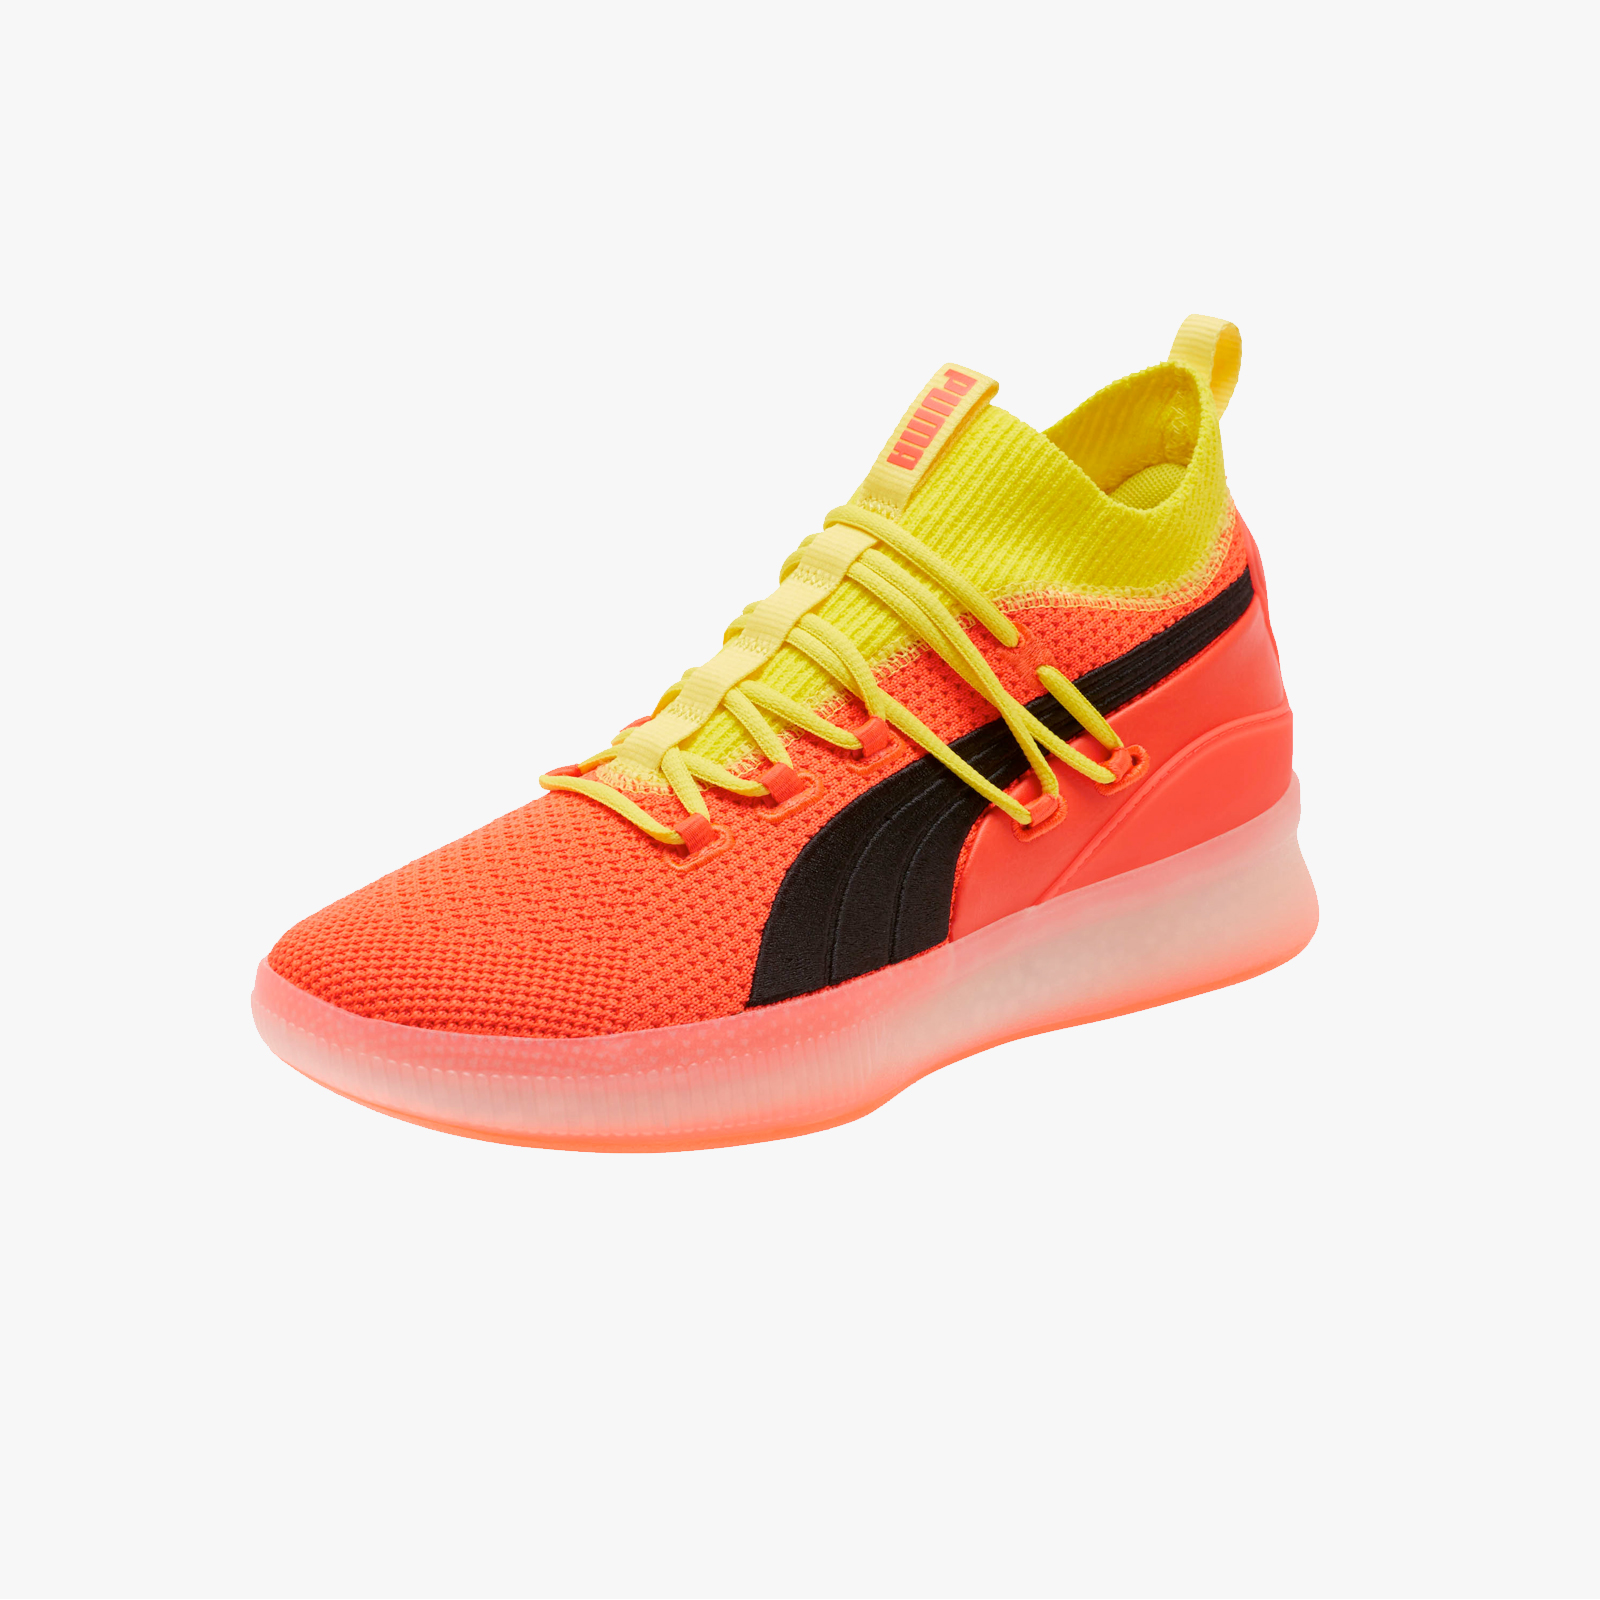 hot sale online 587cc 268f4 Puma Clyde Court Disrupt - 191715-02 - Sneakersnstuff ...